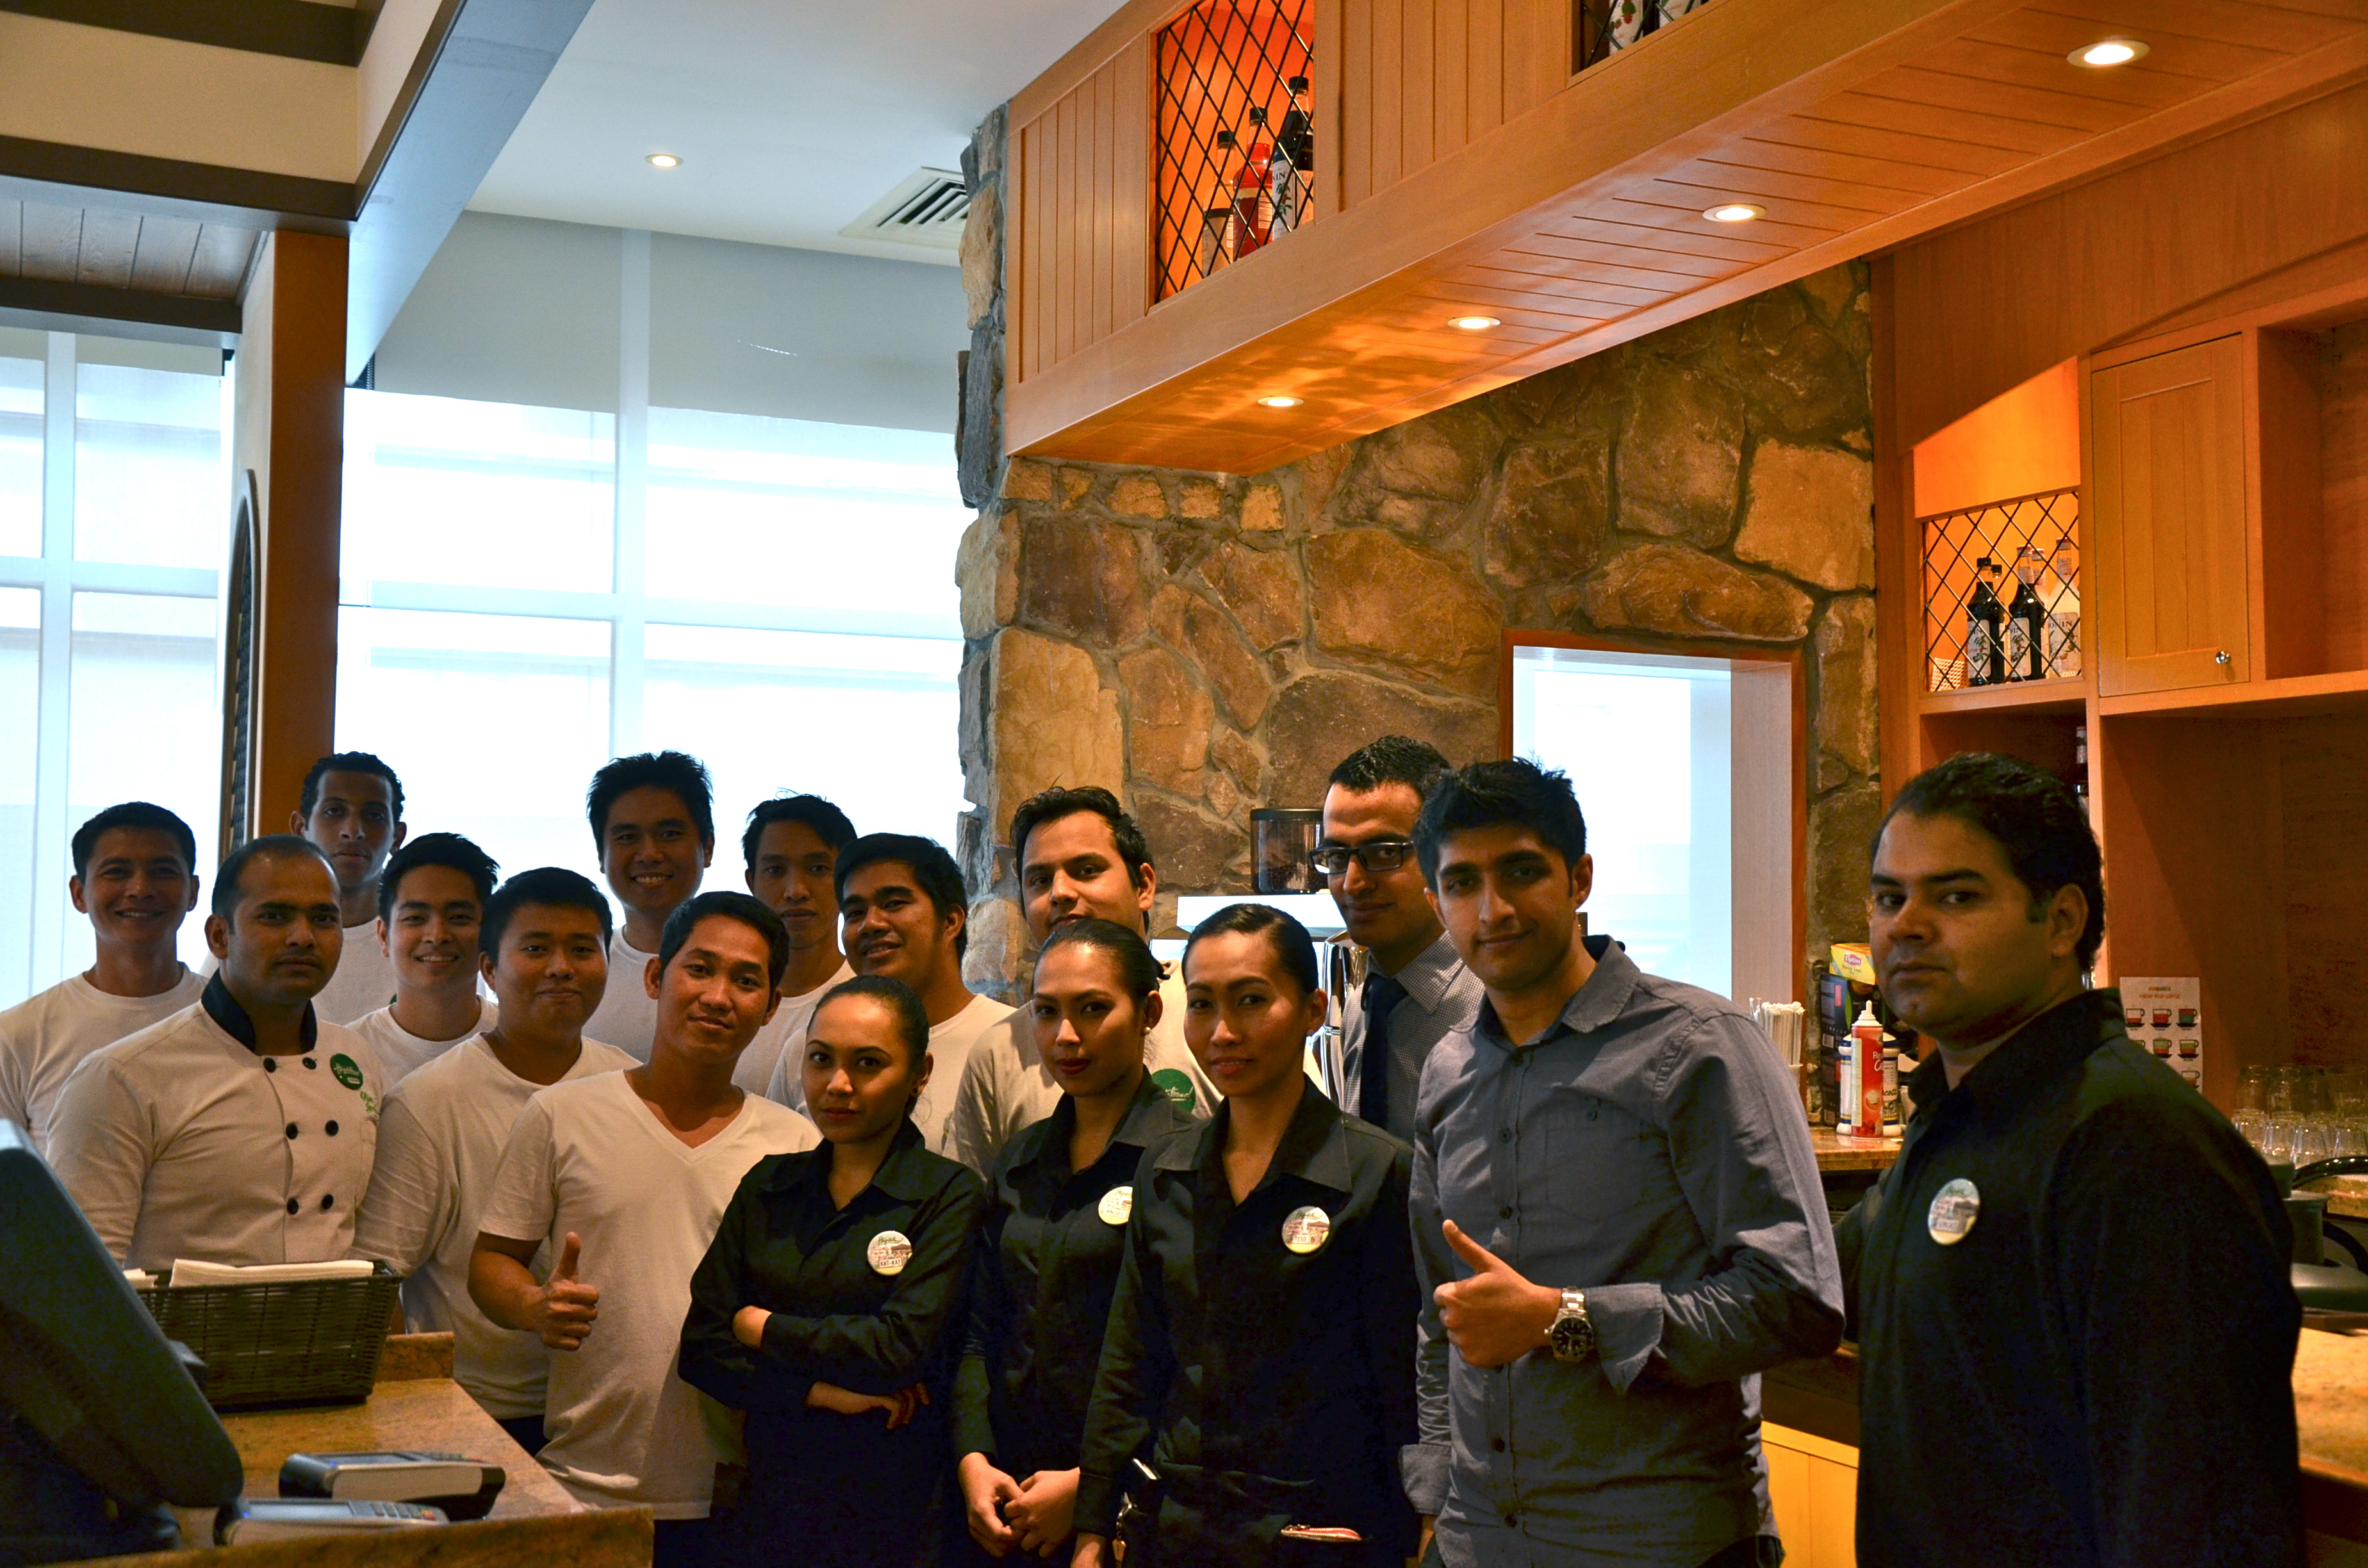 Me along with chefs and staff of Olive Garden | Dubaicravings.com